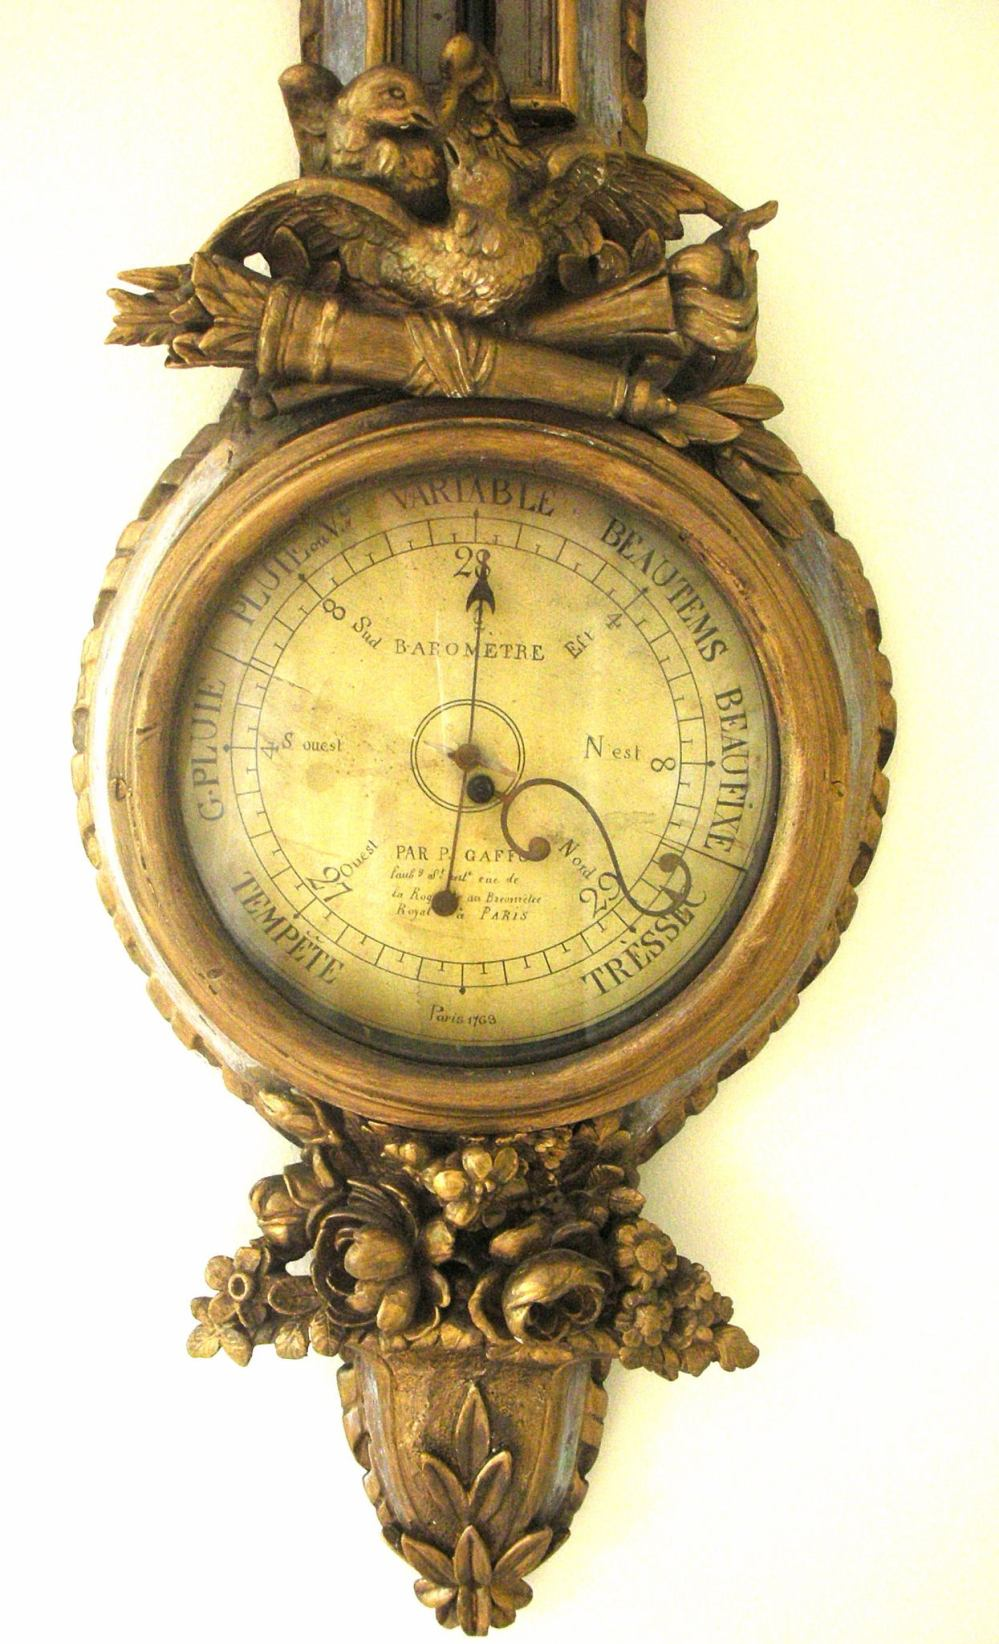 French barometer c, 1763